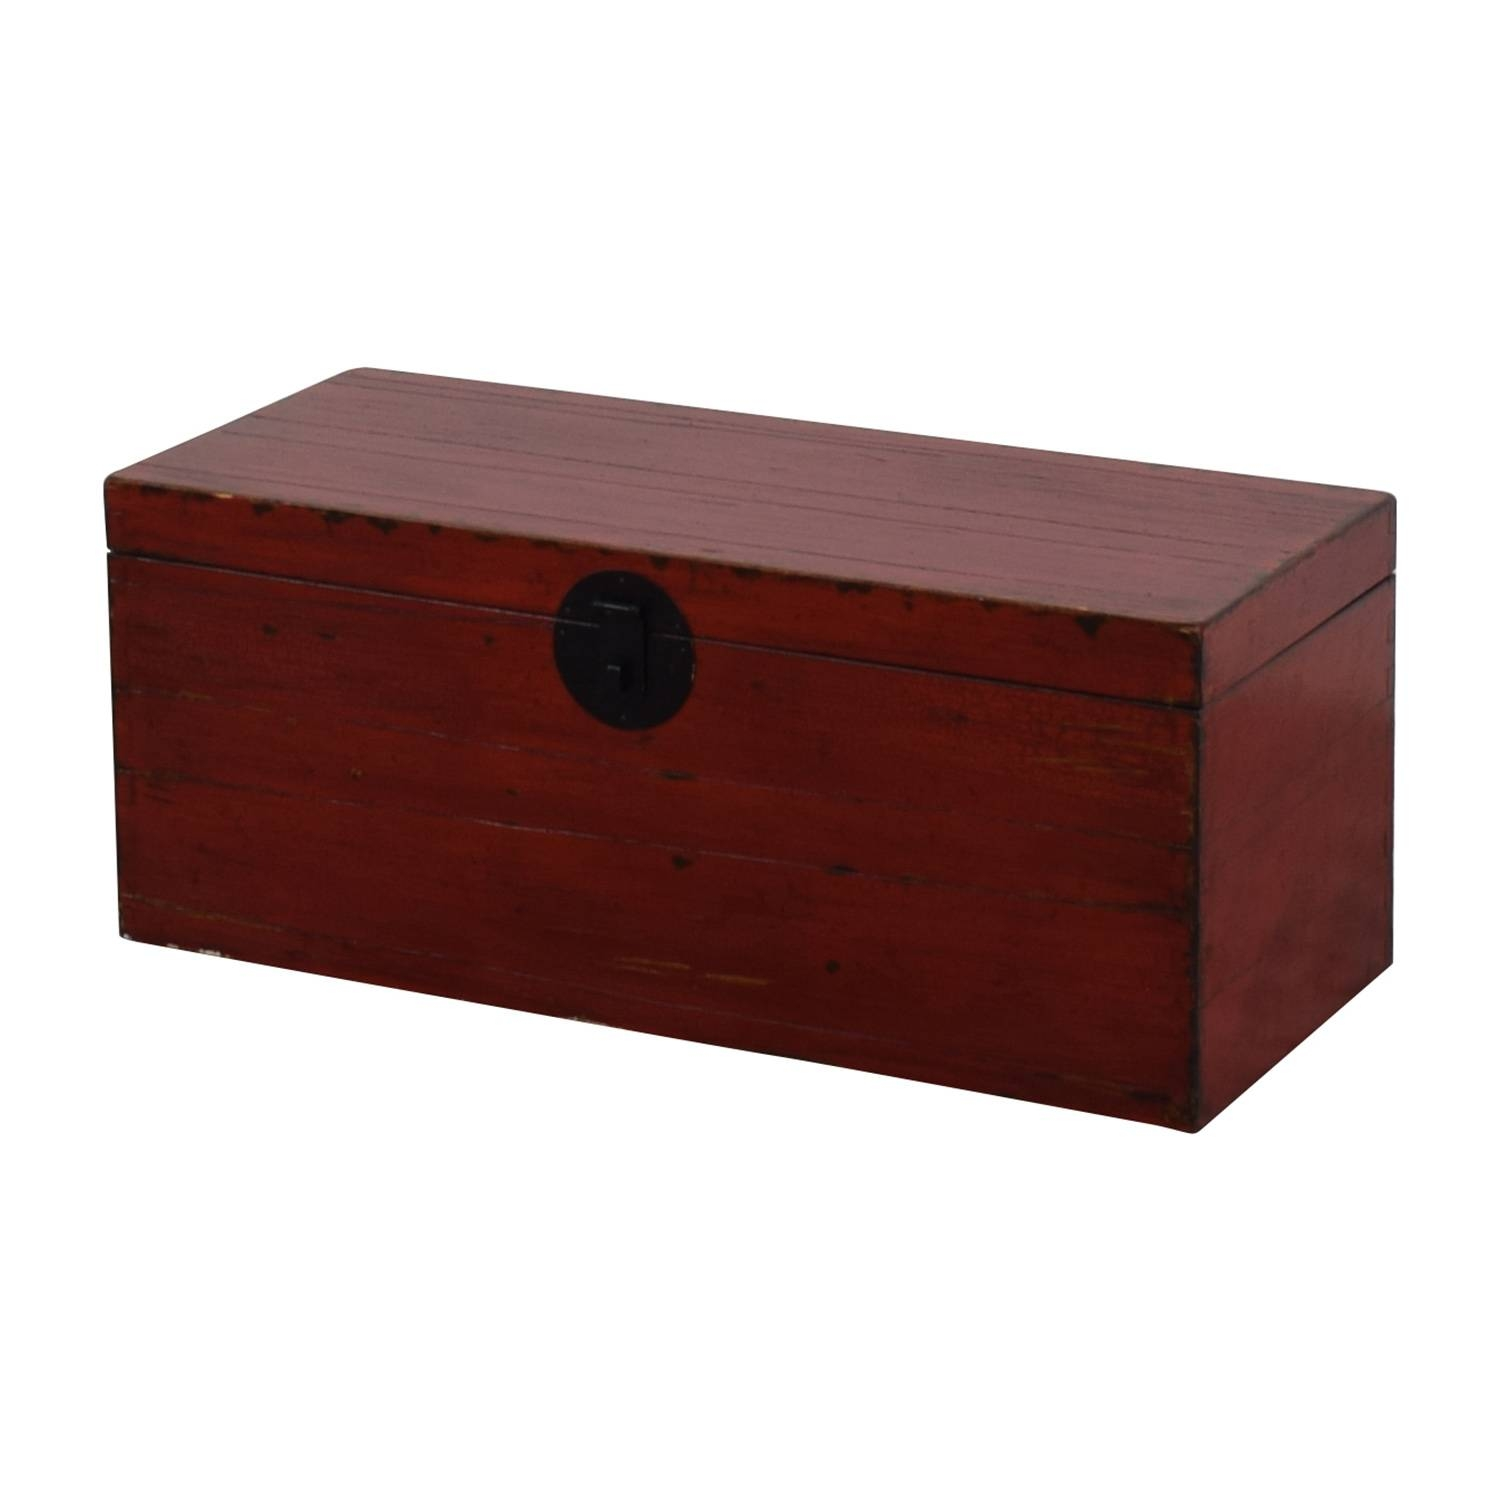 59% Off - Asian Style Red Rustic Trunk / Storage throughout Asian Sideboards (Image 3 of 30)